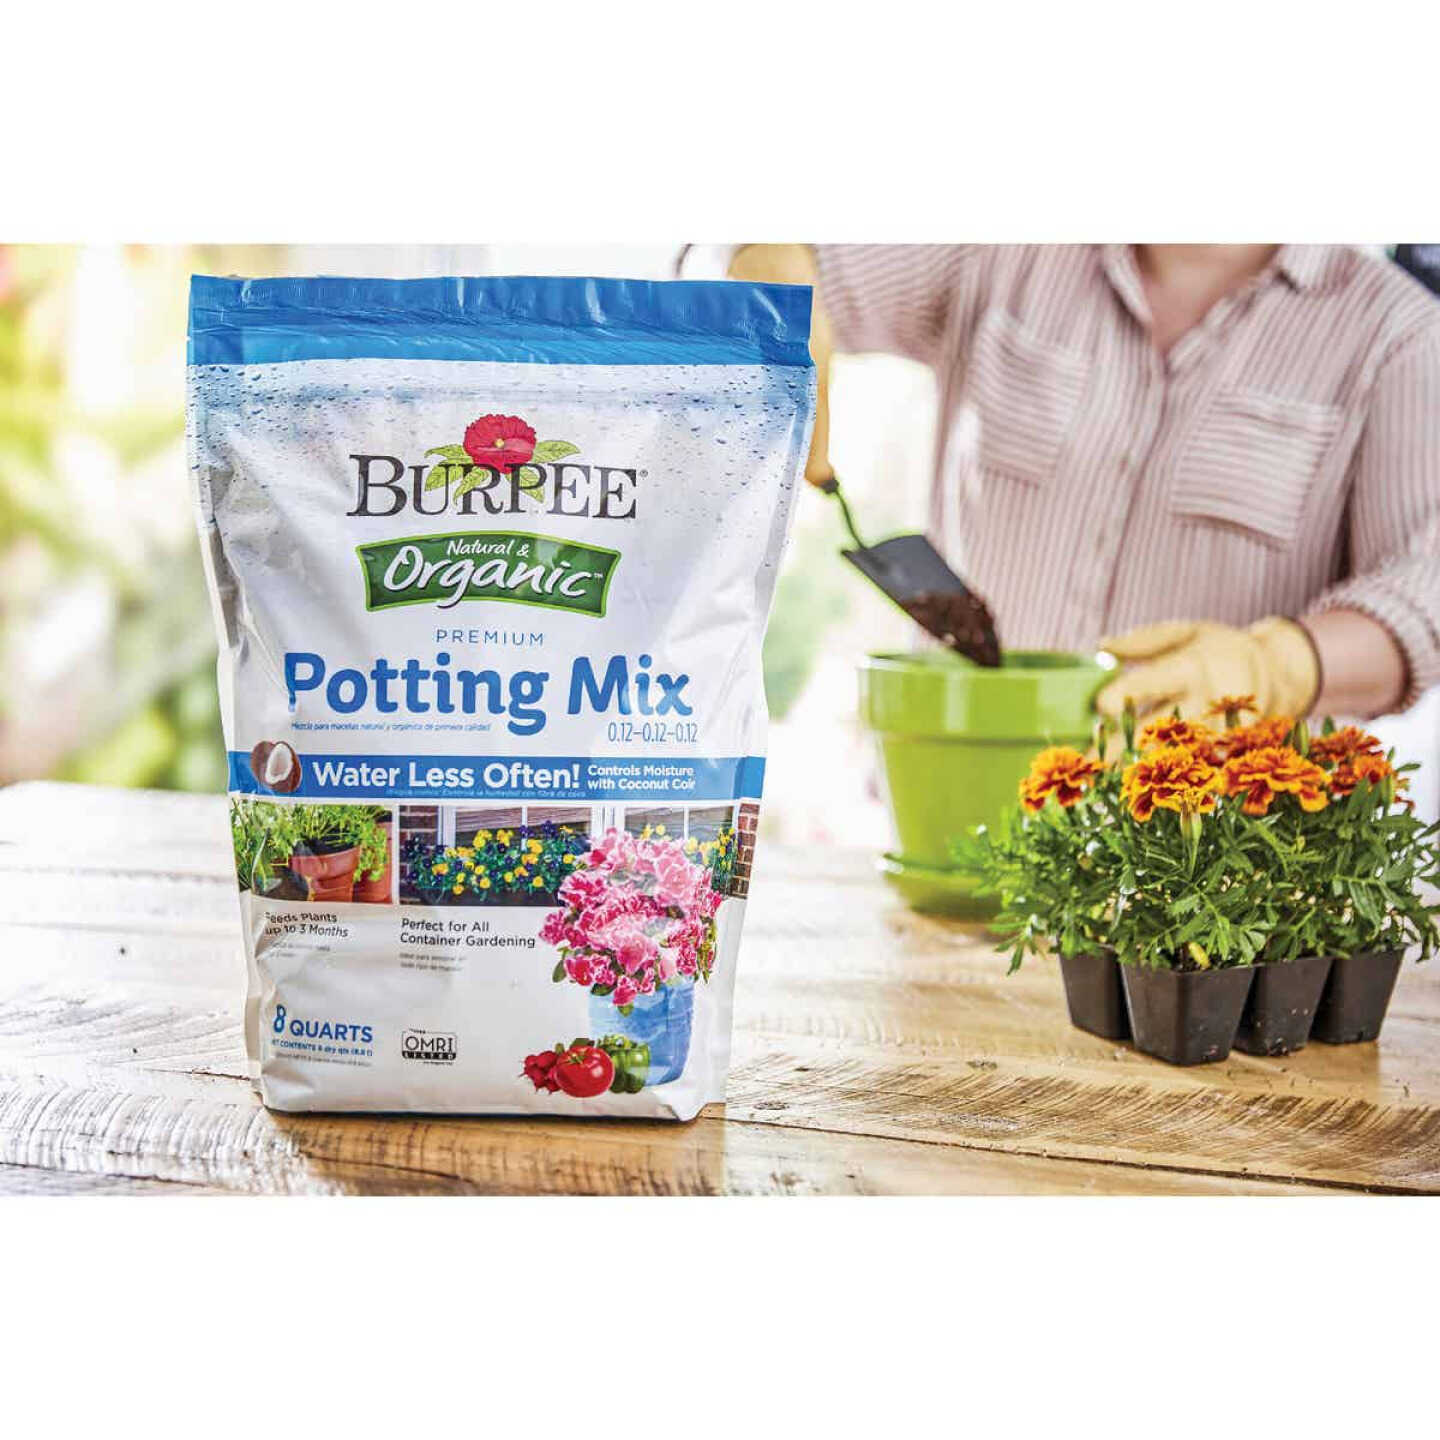 Burpee 8 Qt. 6-1/2 Lb. All Purpose Container Organic Seed Starting Mix Image 2